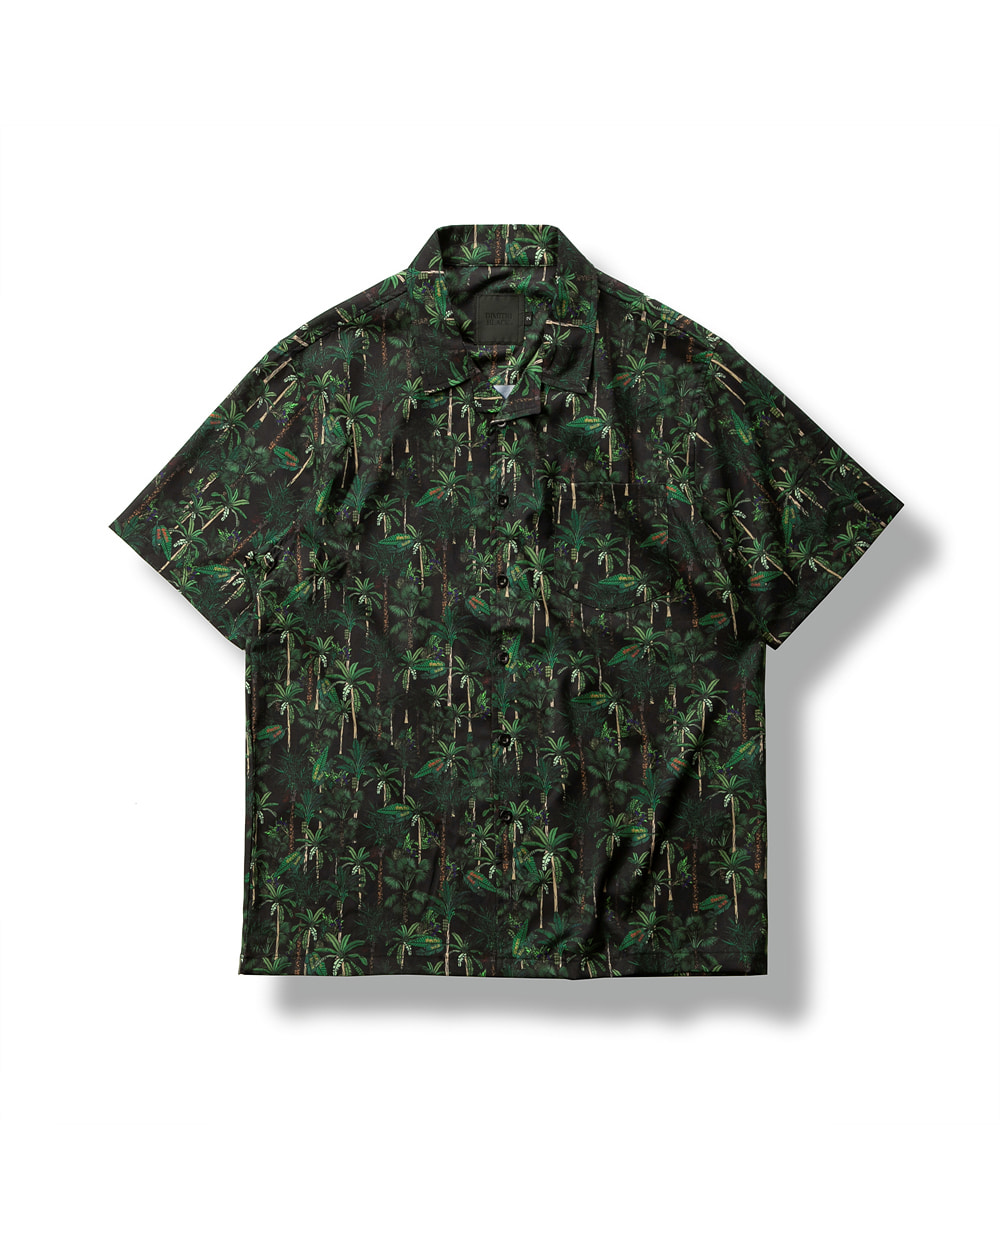 DIMITRI HONOLULU SHIRTS